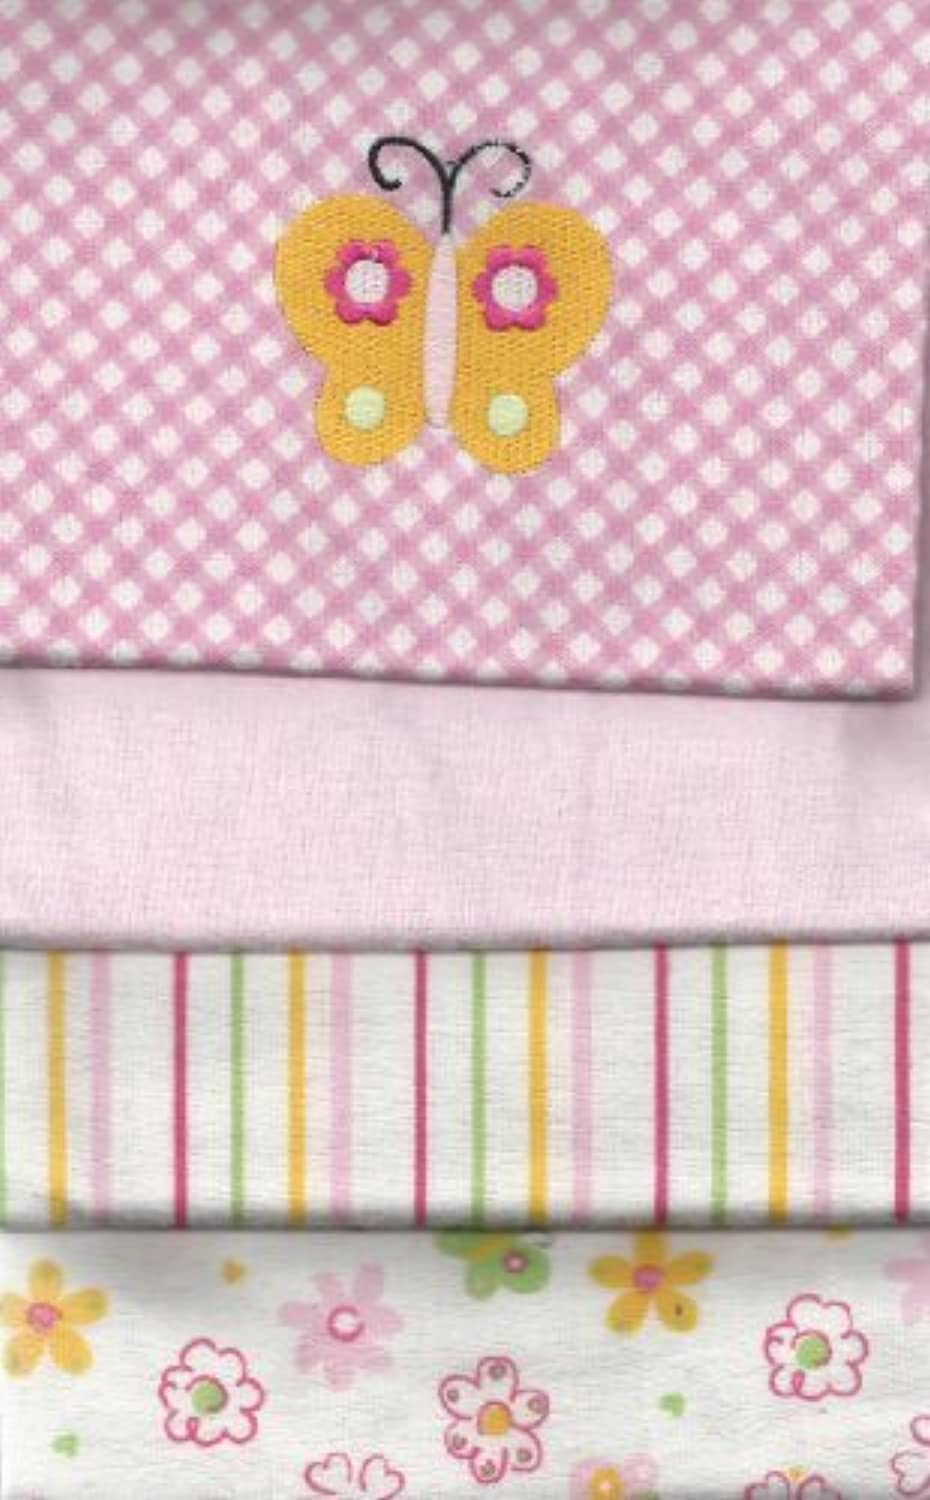 Carter's 4 Flannel Blanket Set For Baby Girl Pink Blankets embroidered Butterfly by Carter's [並行輸入品]